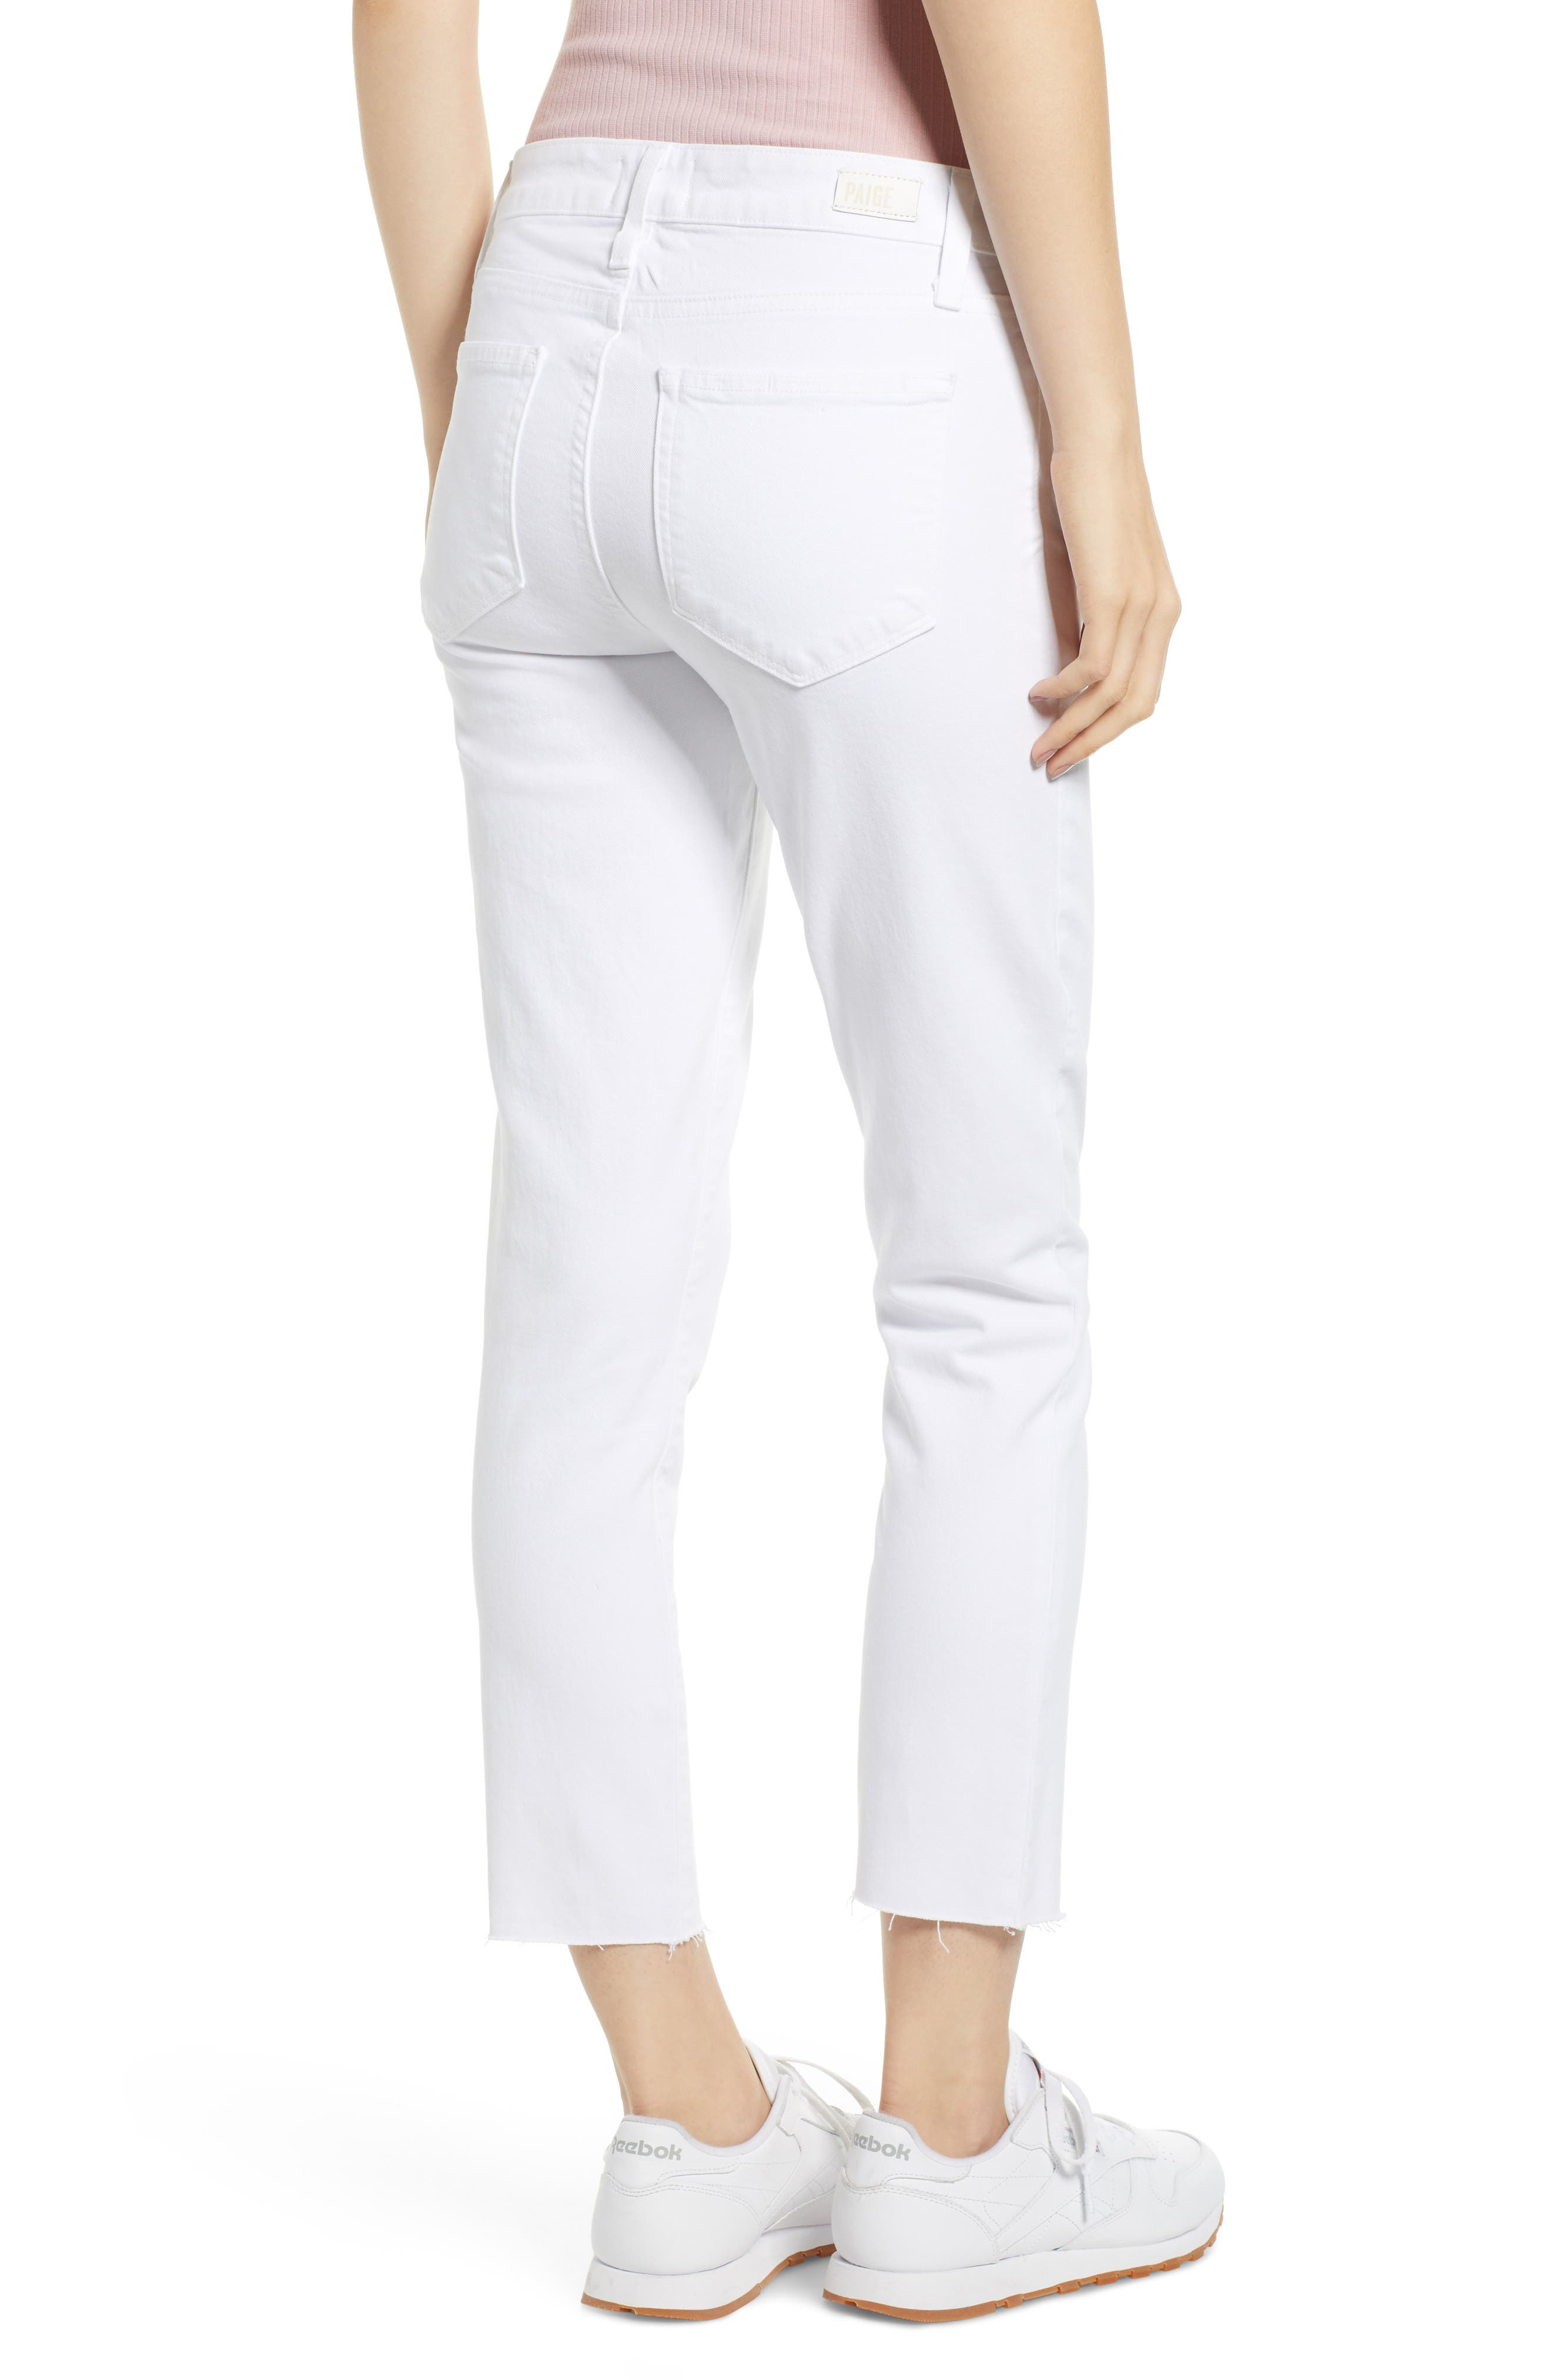 216ae6c2f12 paige white jeans | Nordstrom